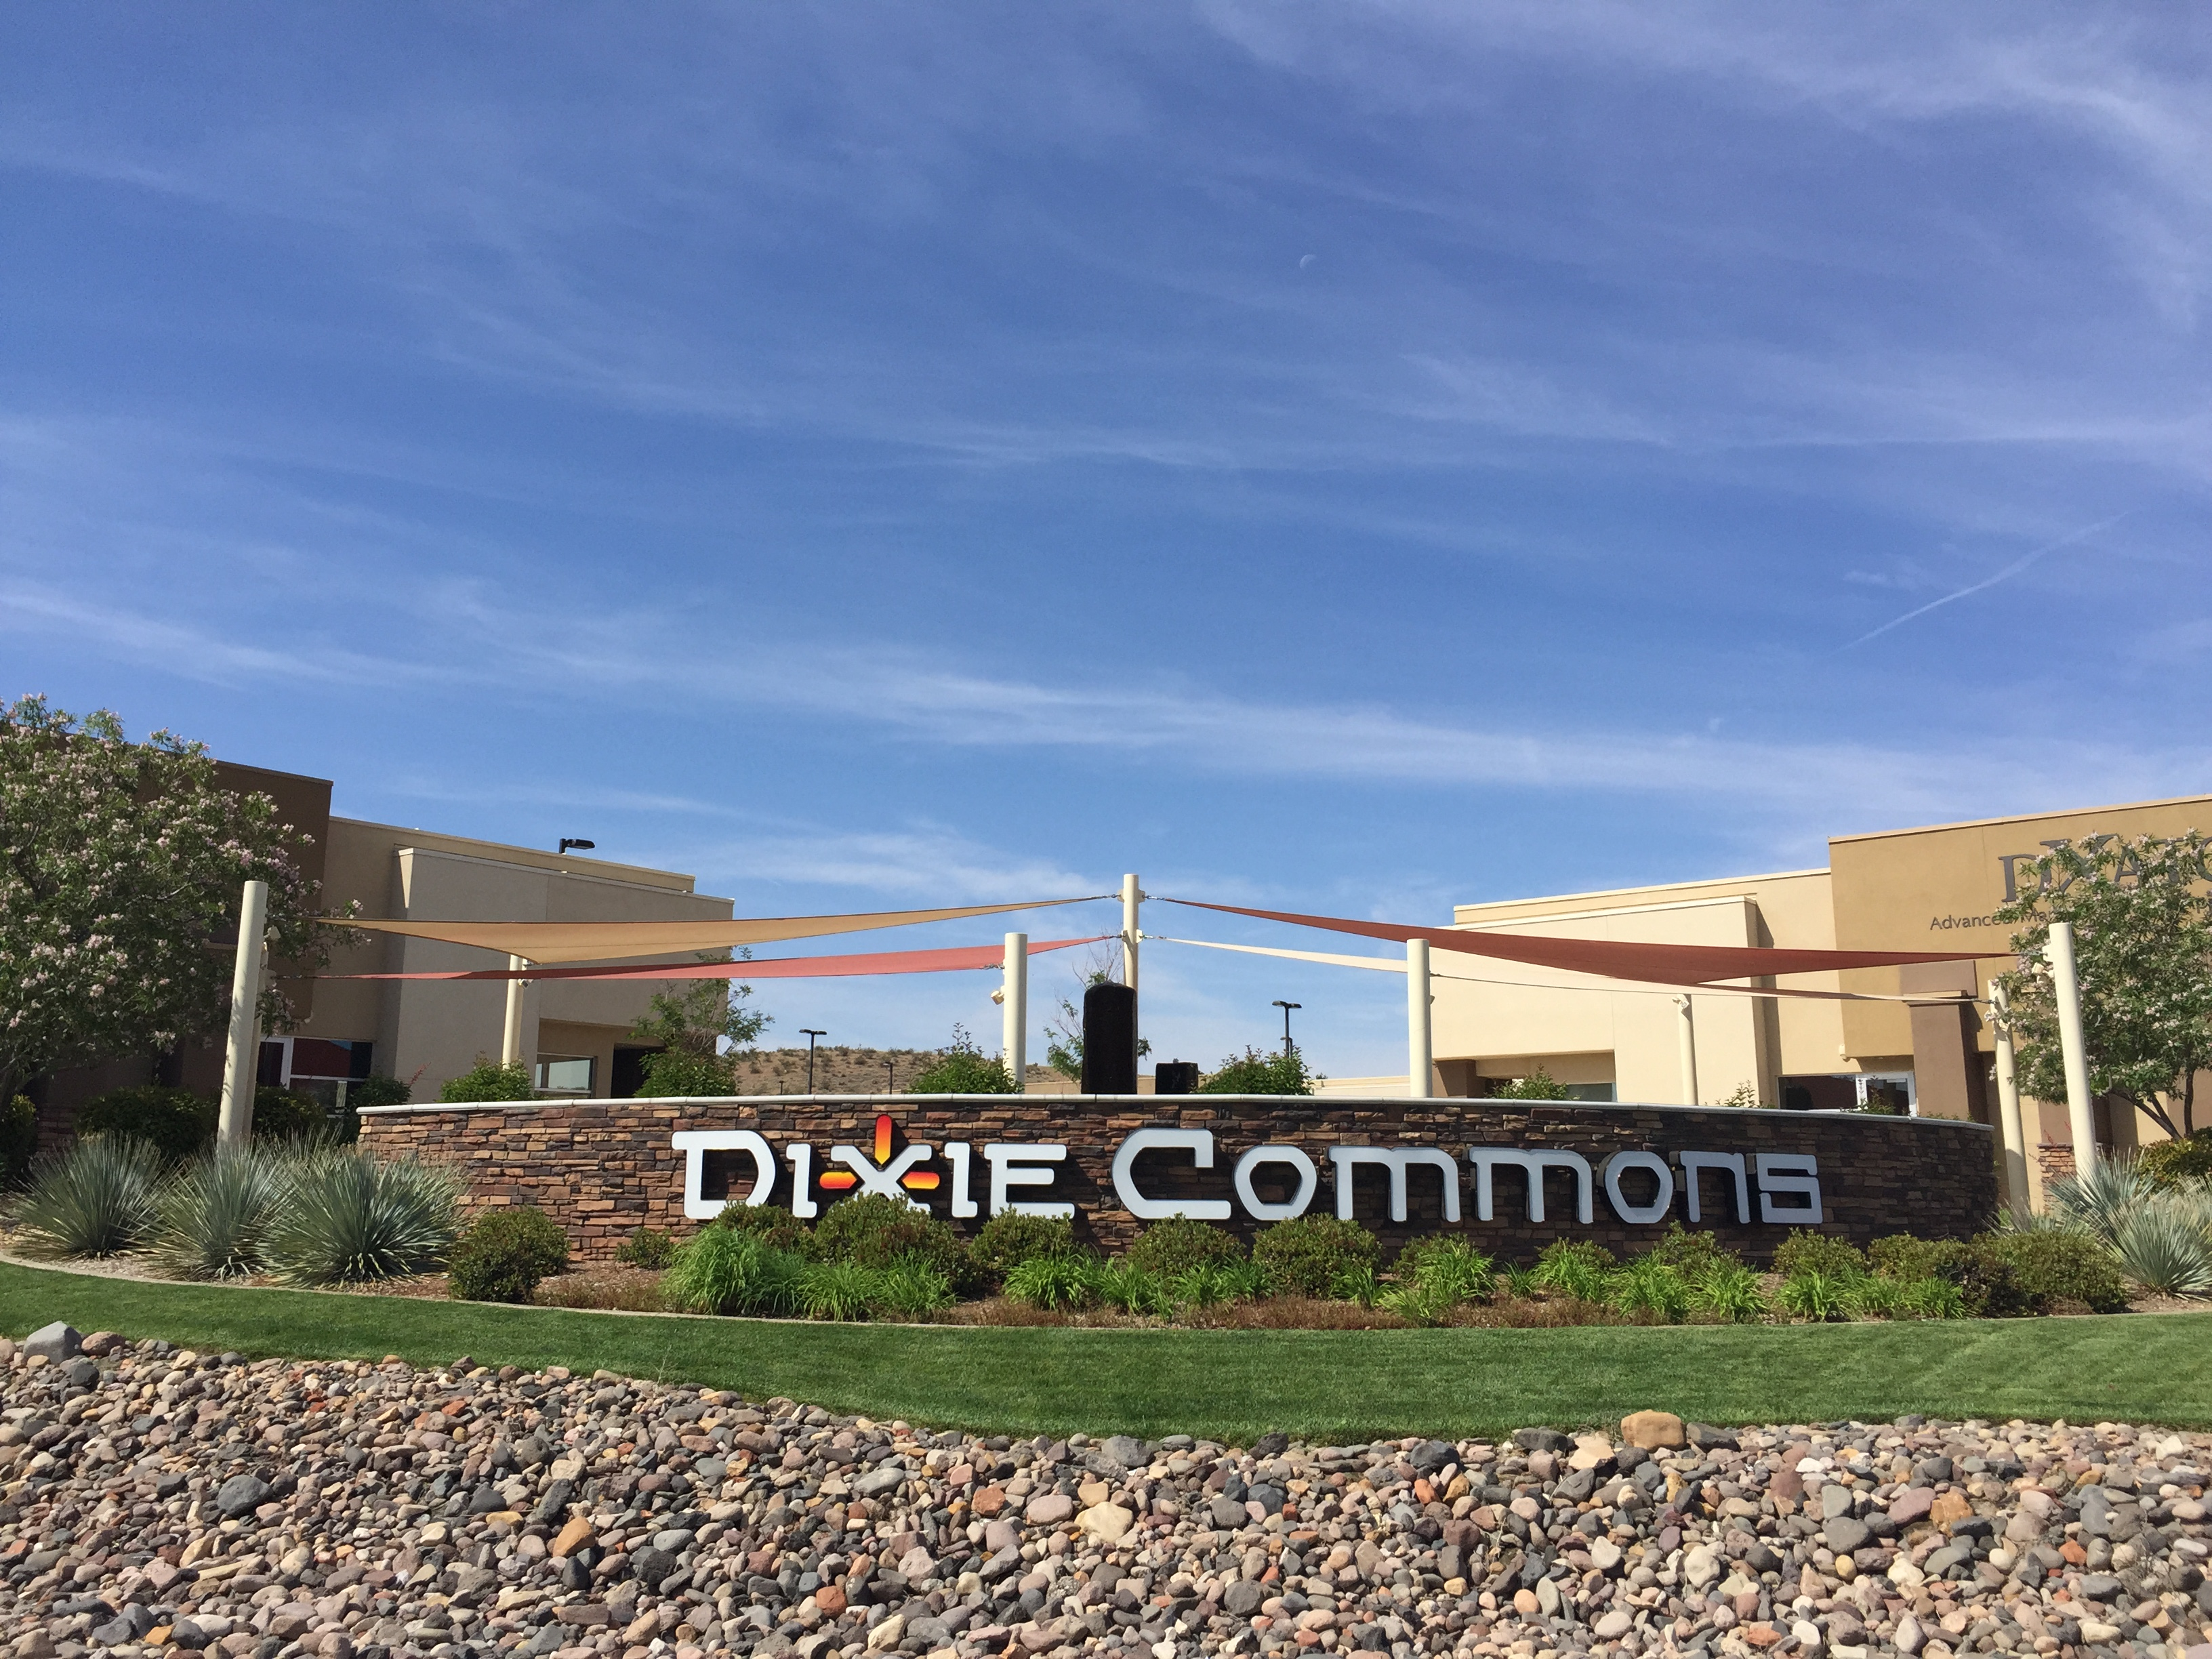 Dixie Commons